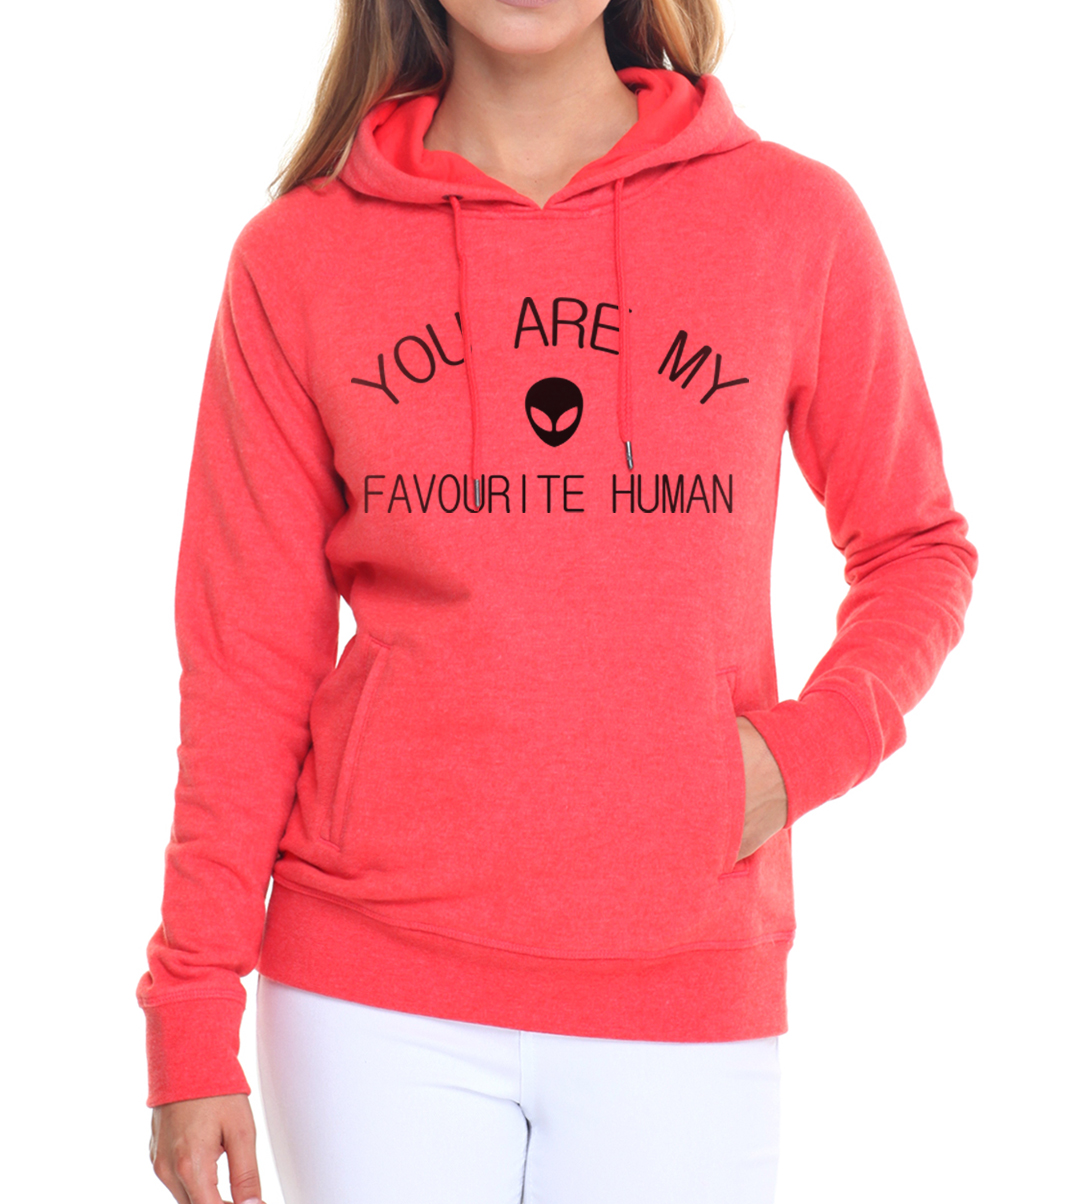 2017 fleece hoodies kpop hoody top pink tracksuits funny slogan Womens Sweatshirts YOU ARE MY FAVOURITE HUMAN casual pullovers